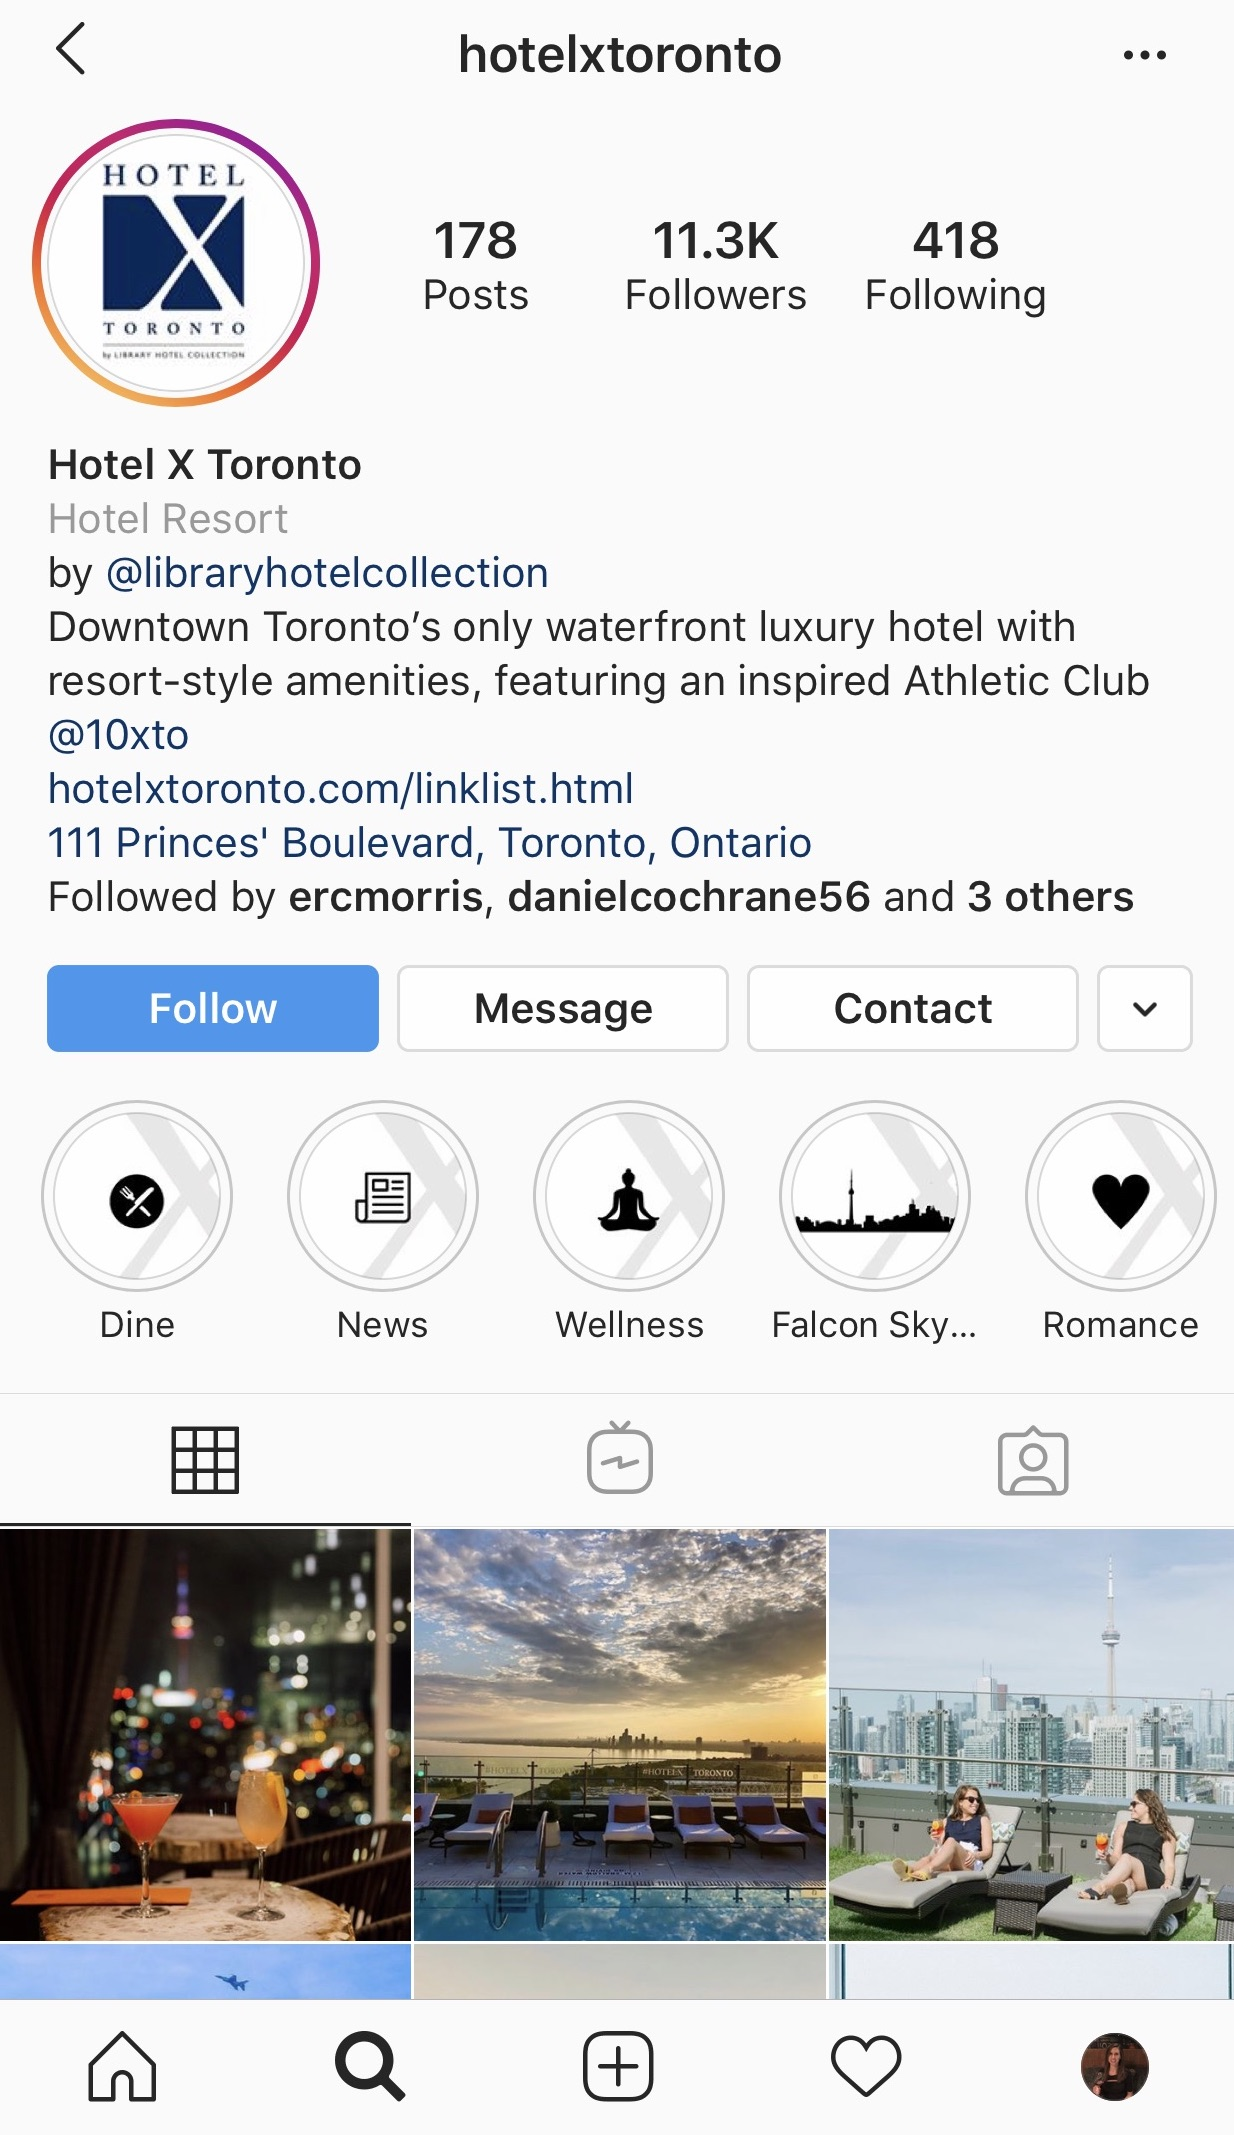 Hospitality bio showing a variety of activities on Instagram Highlights